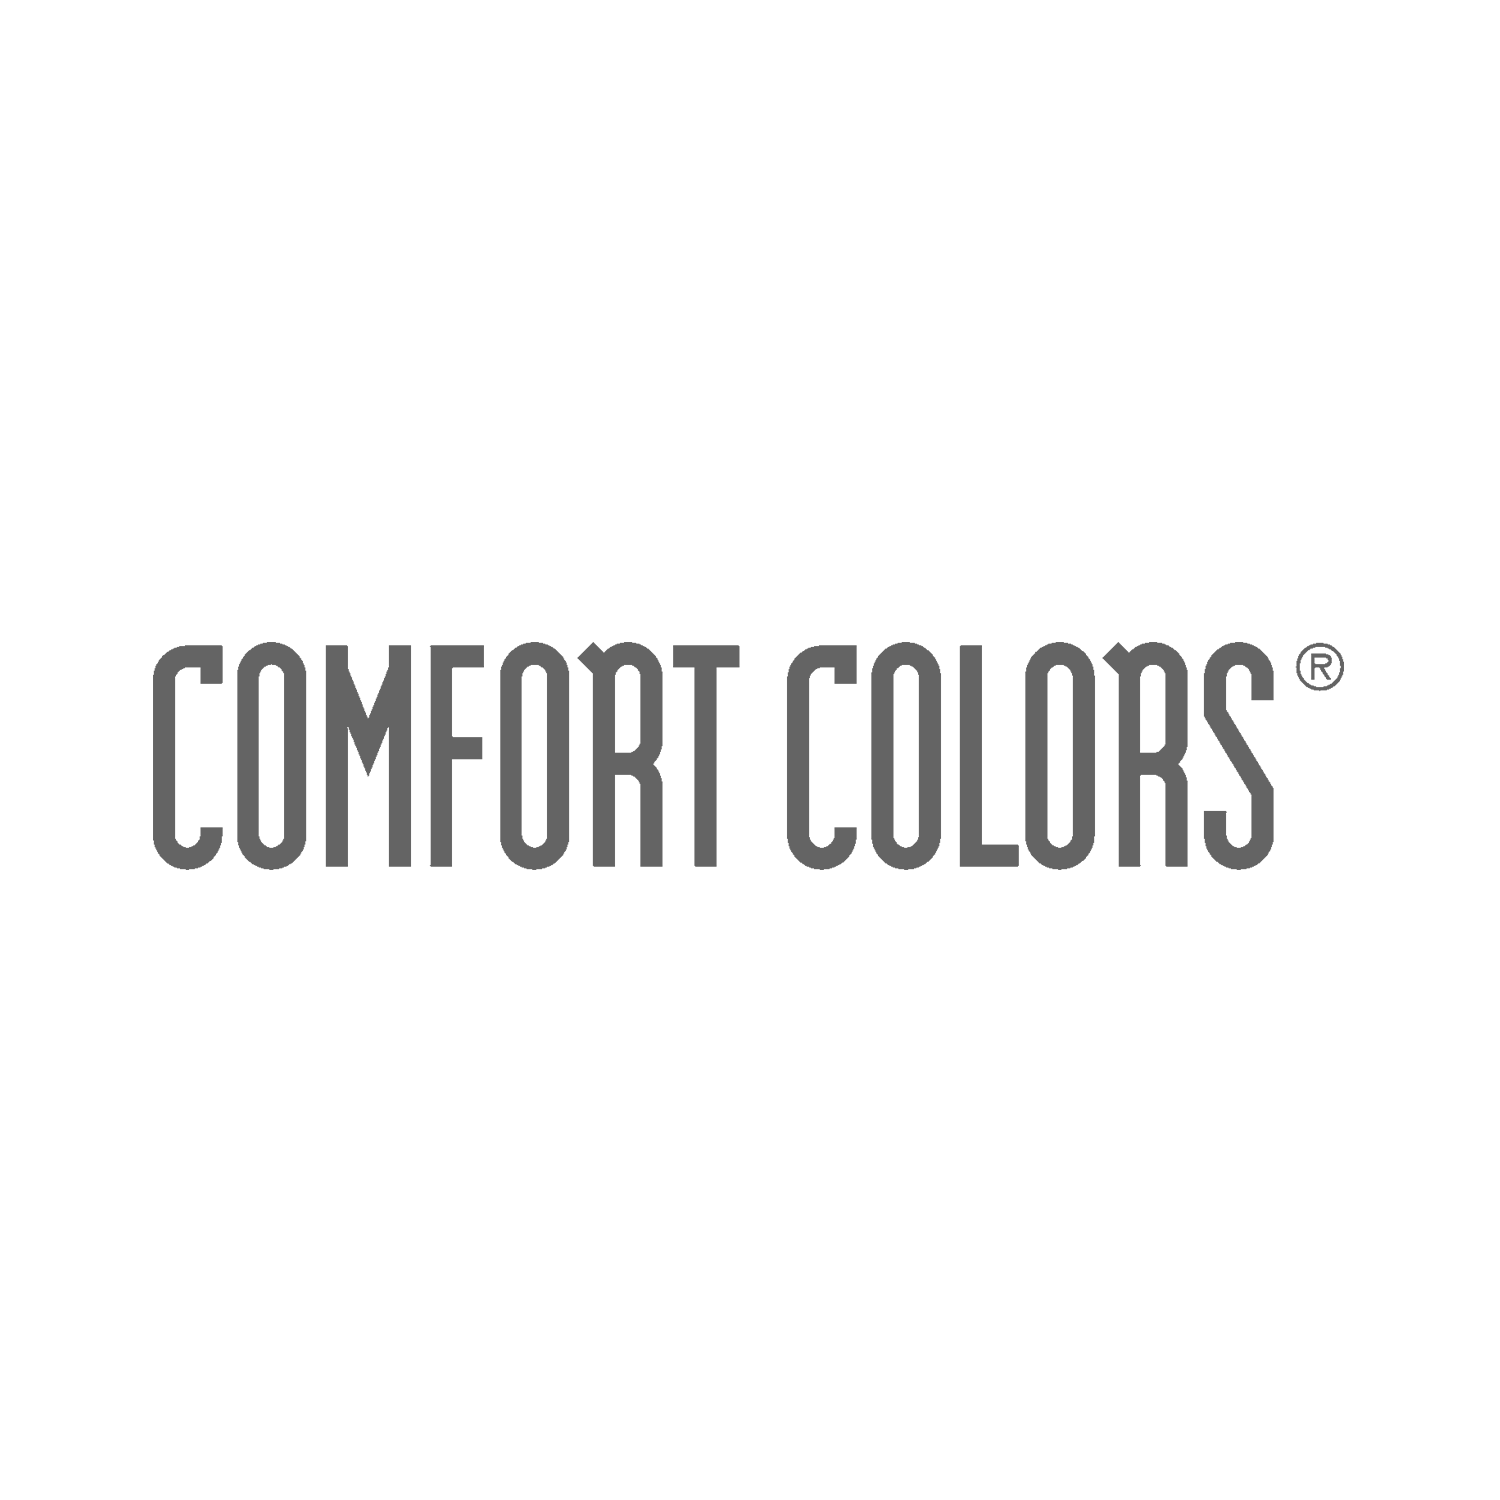 ComfortColors.png